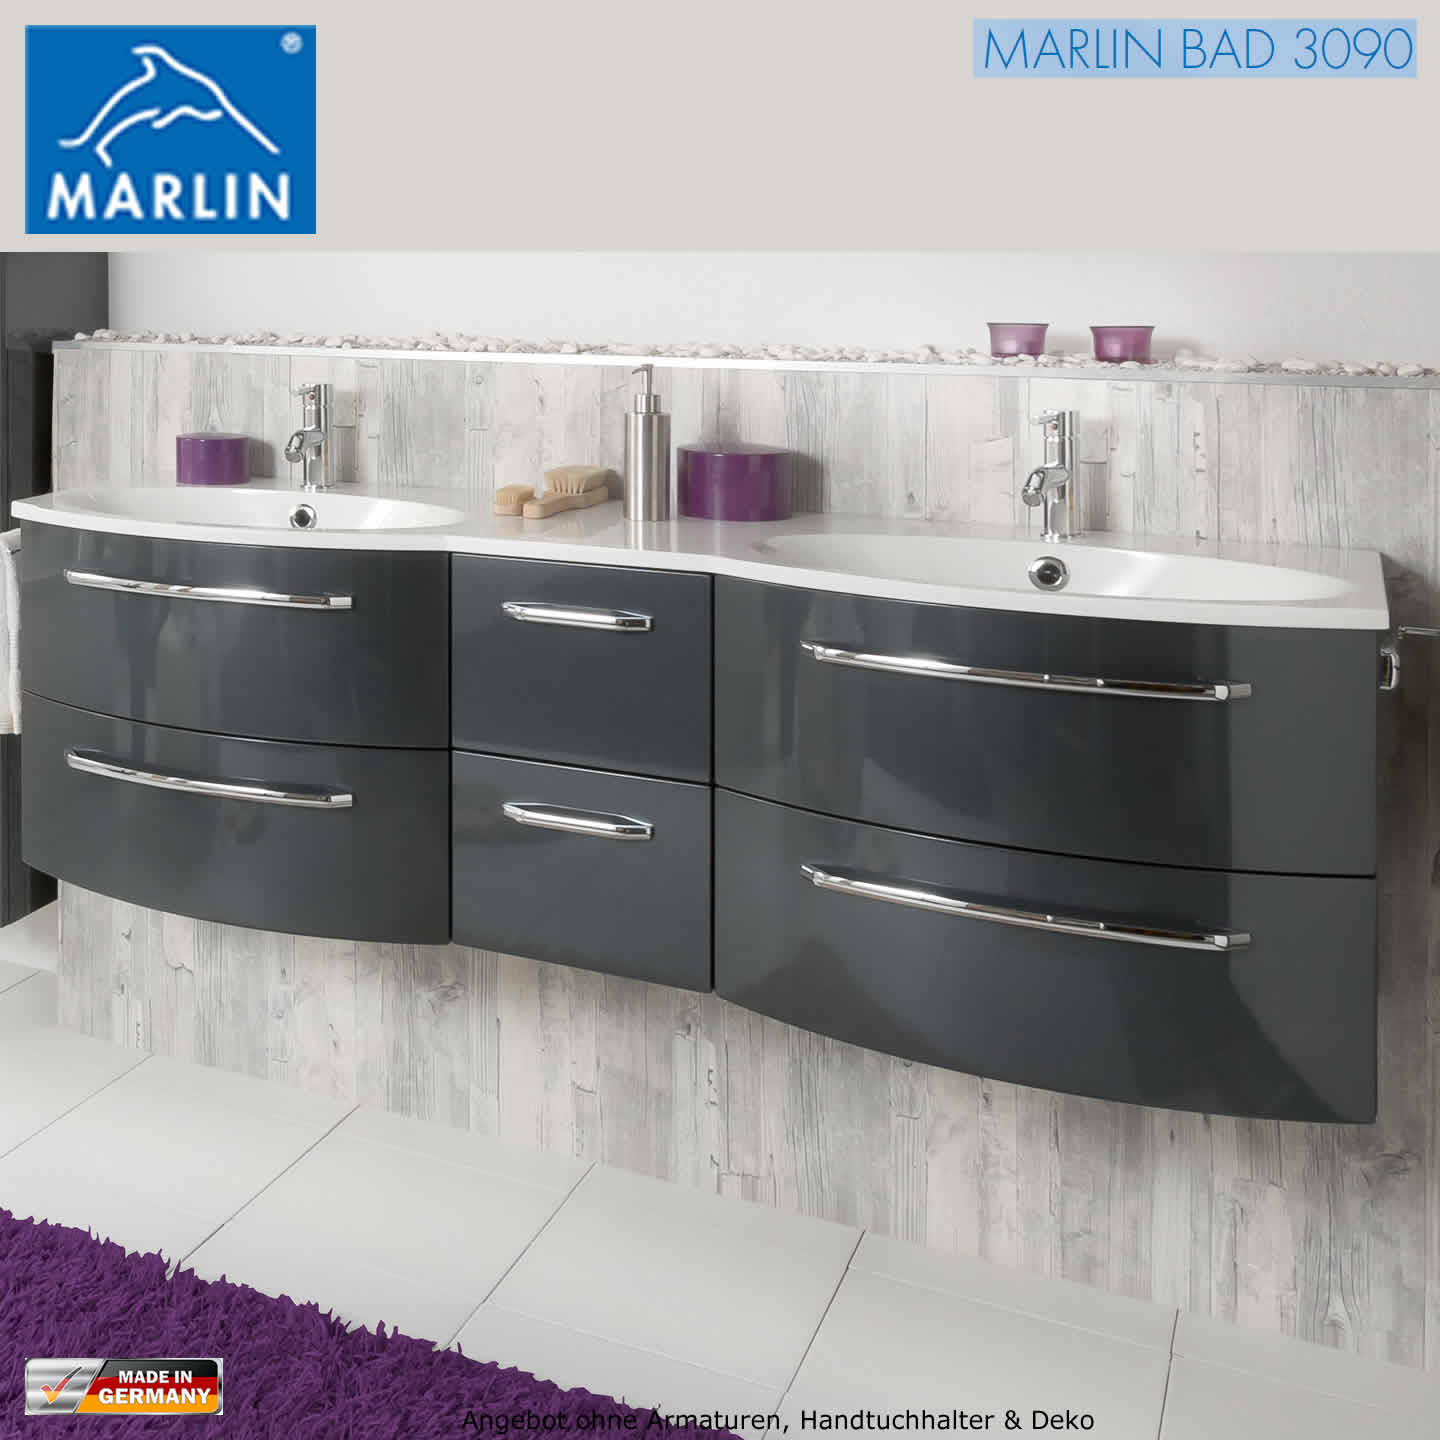 marlin 3090 cosmo waschtisch set 150 cm impulsbad. Black Bedroom Furniture Sets. Home Design Ideas